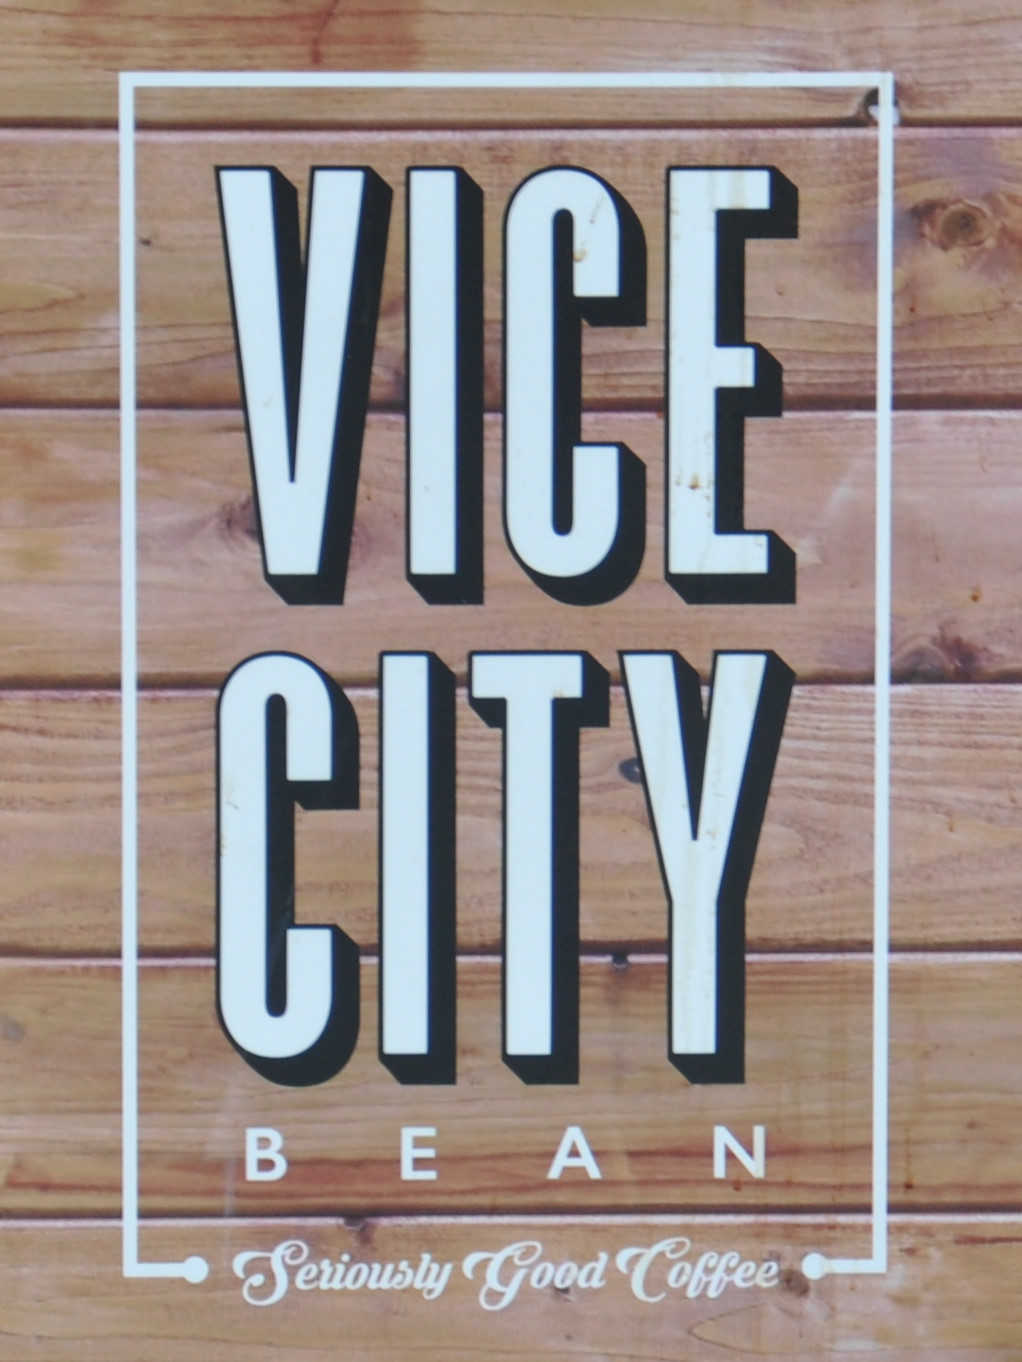 Detail from the side of the Vice City Bean cold brew tricycle in Miami, Florida :seriously good coffee!